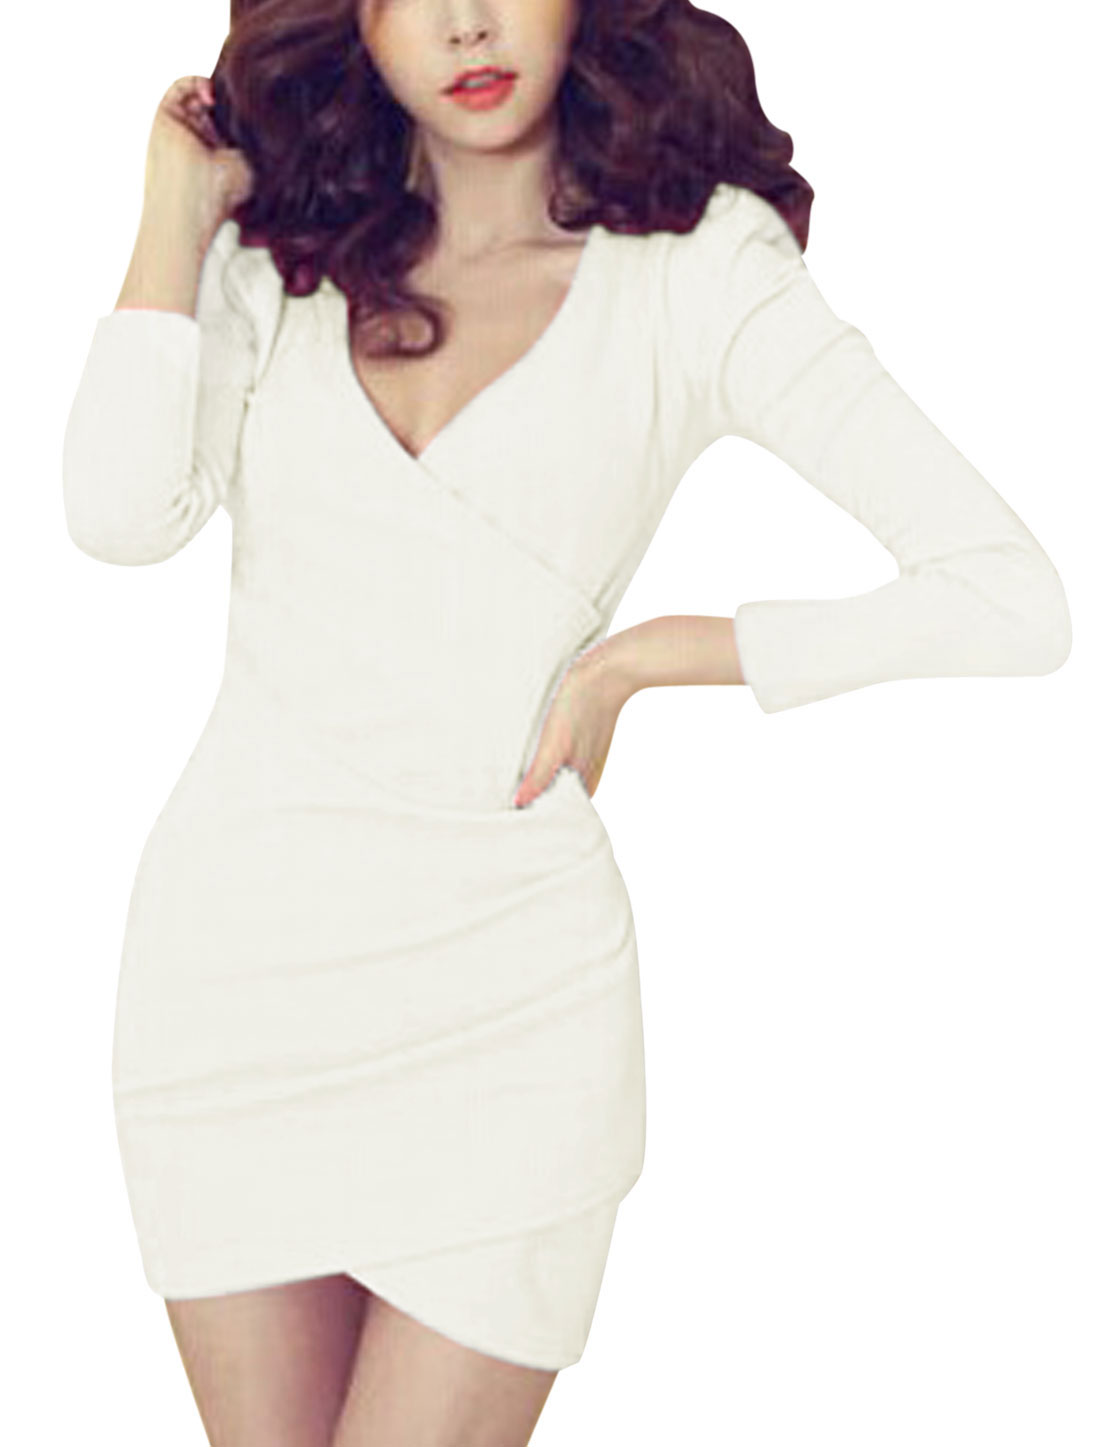 Ladies Long Sleeves Ruffled Detail Pullover White Sheath Dress S